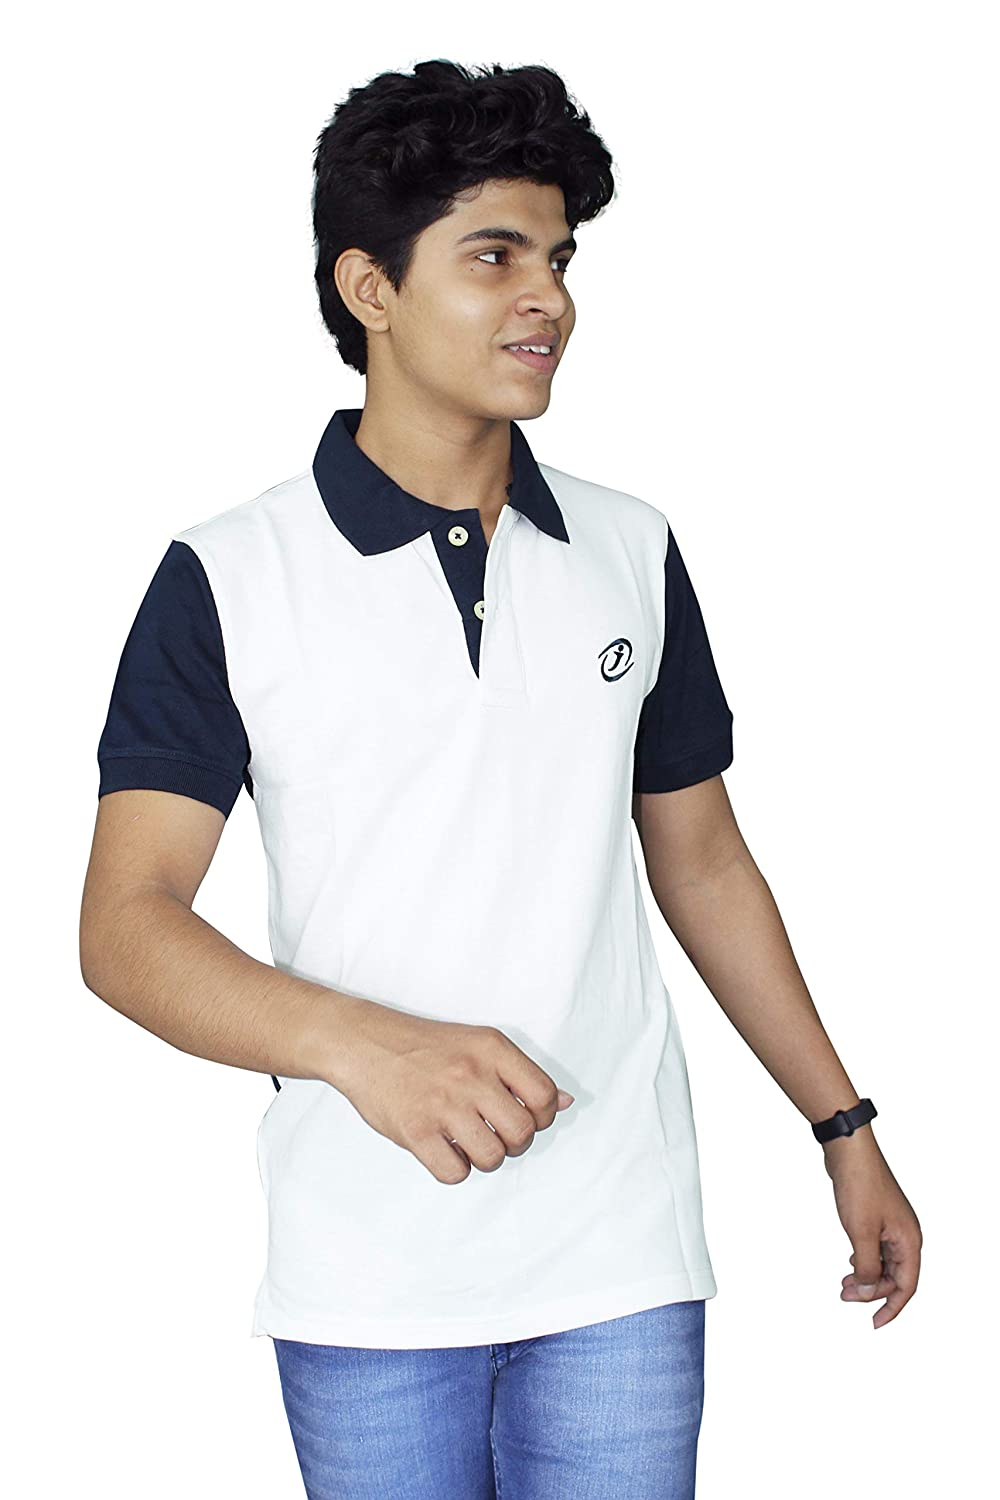 JigarZee White Polo T-Shirt for Men  c3e8c5014